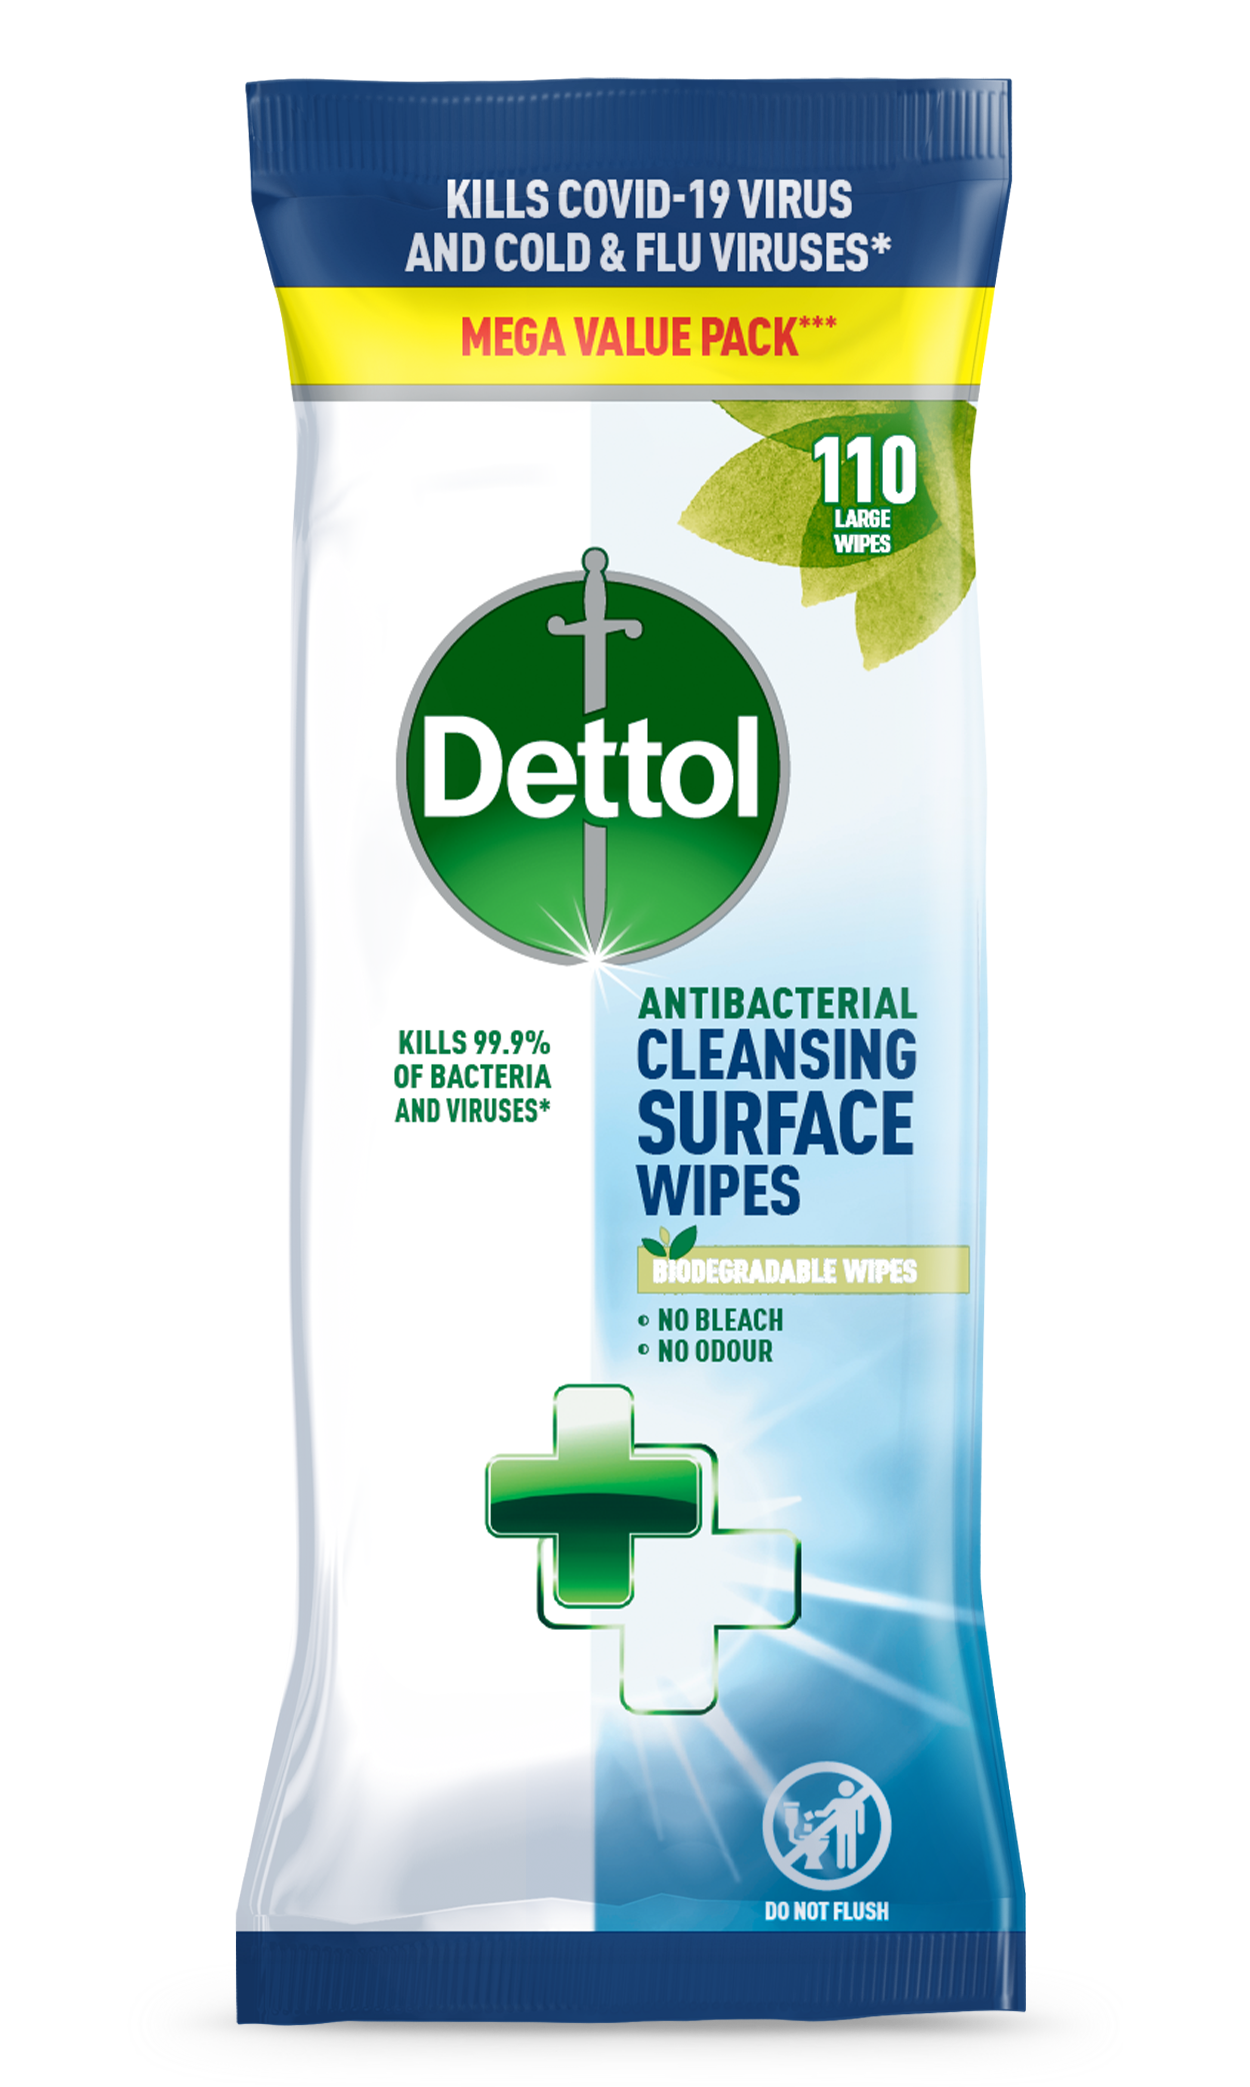 Dettol Cleansing Surface Wipes